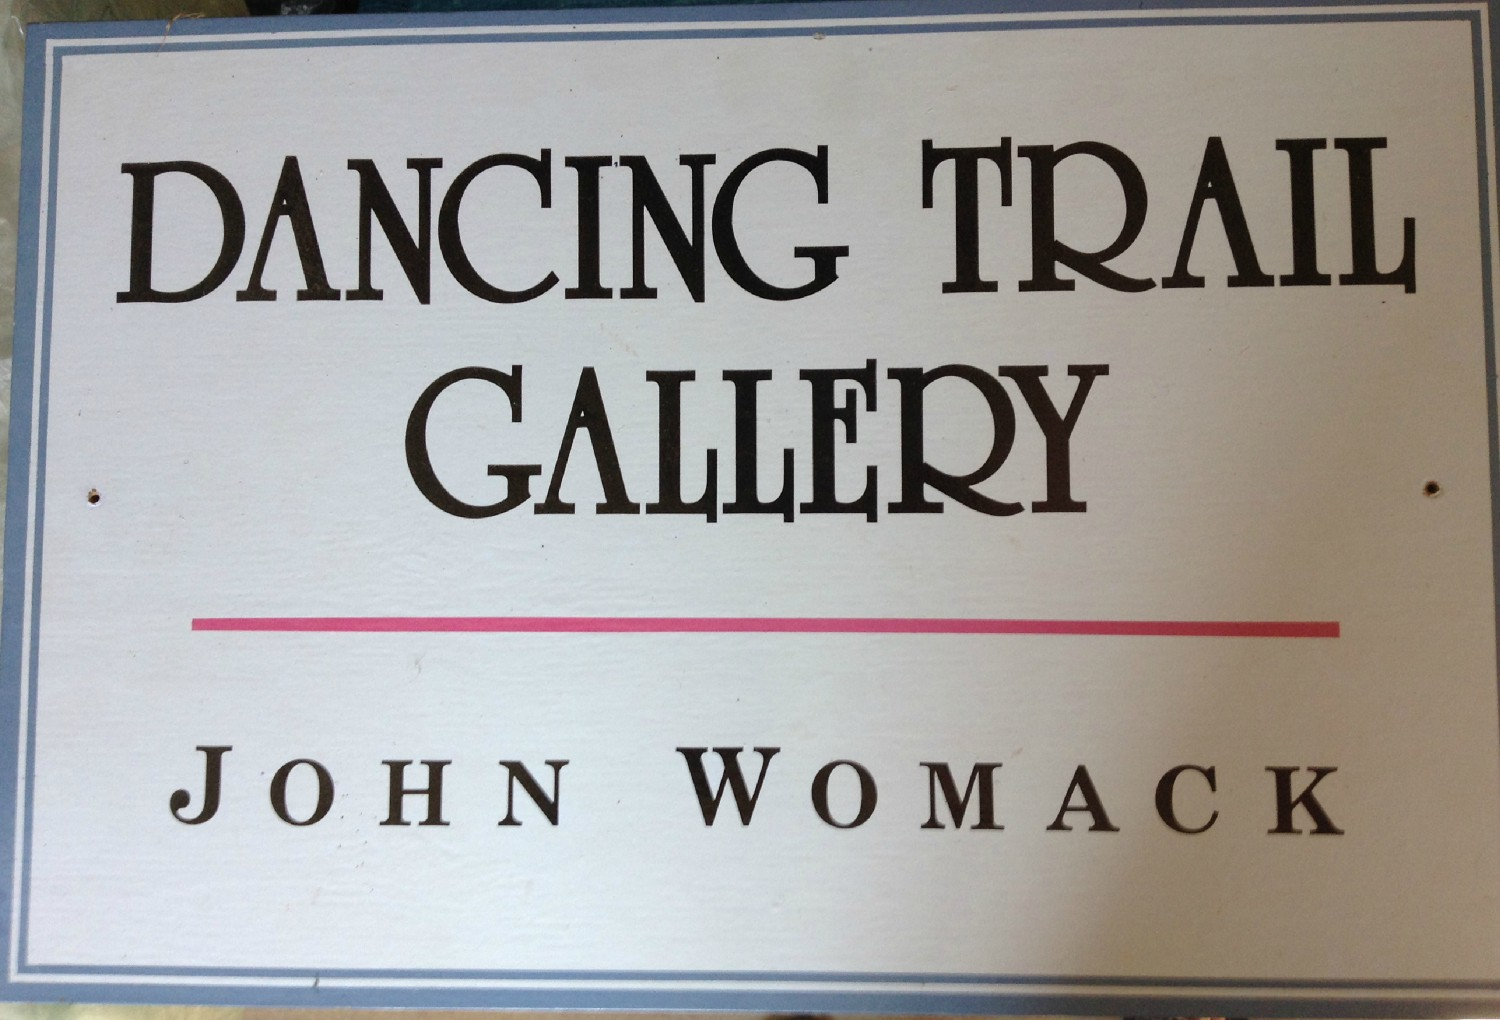 dancing trail gallery author womack john